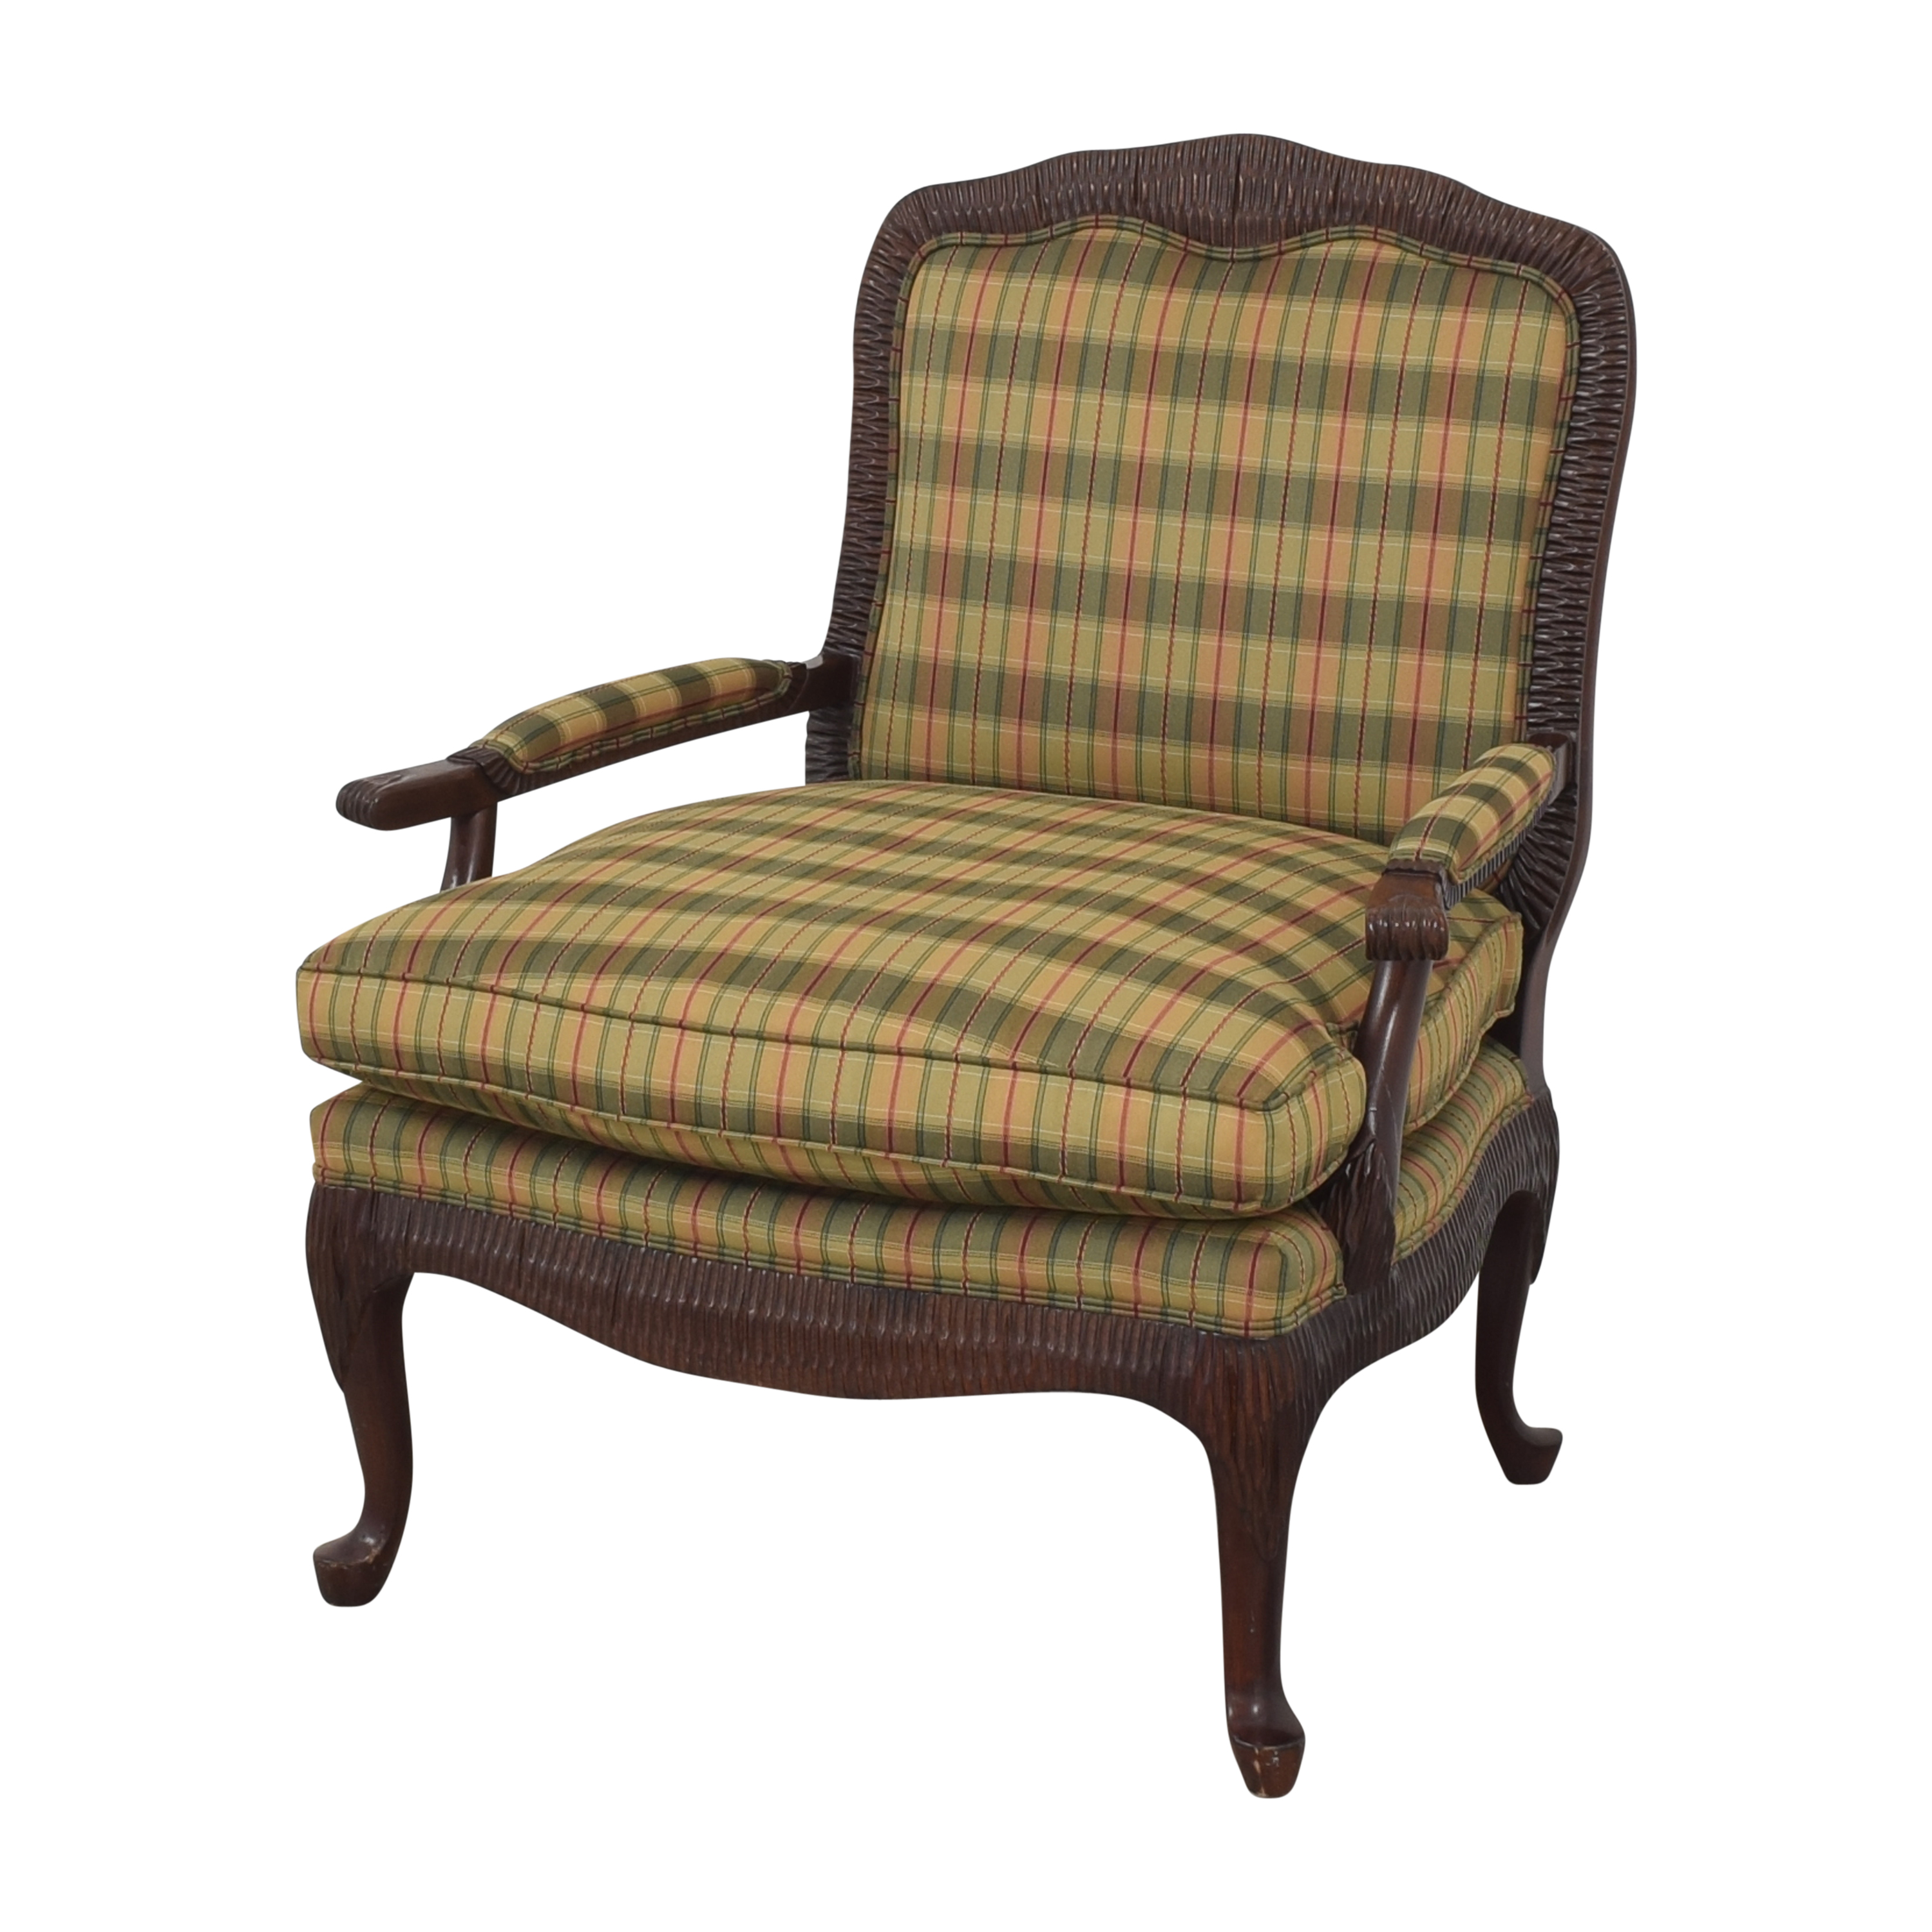 buy Lexington Furniture Upholstered Accent Chair Lexington Furniture Chairs